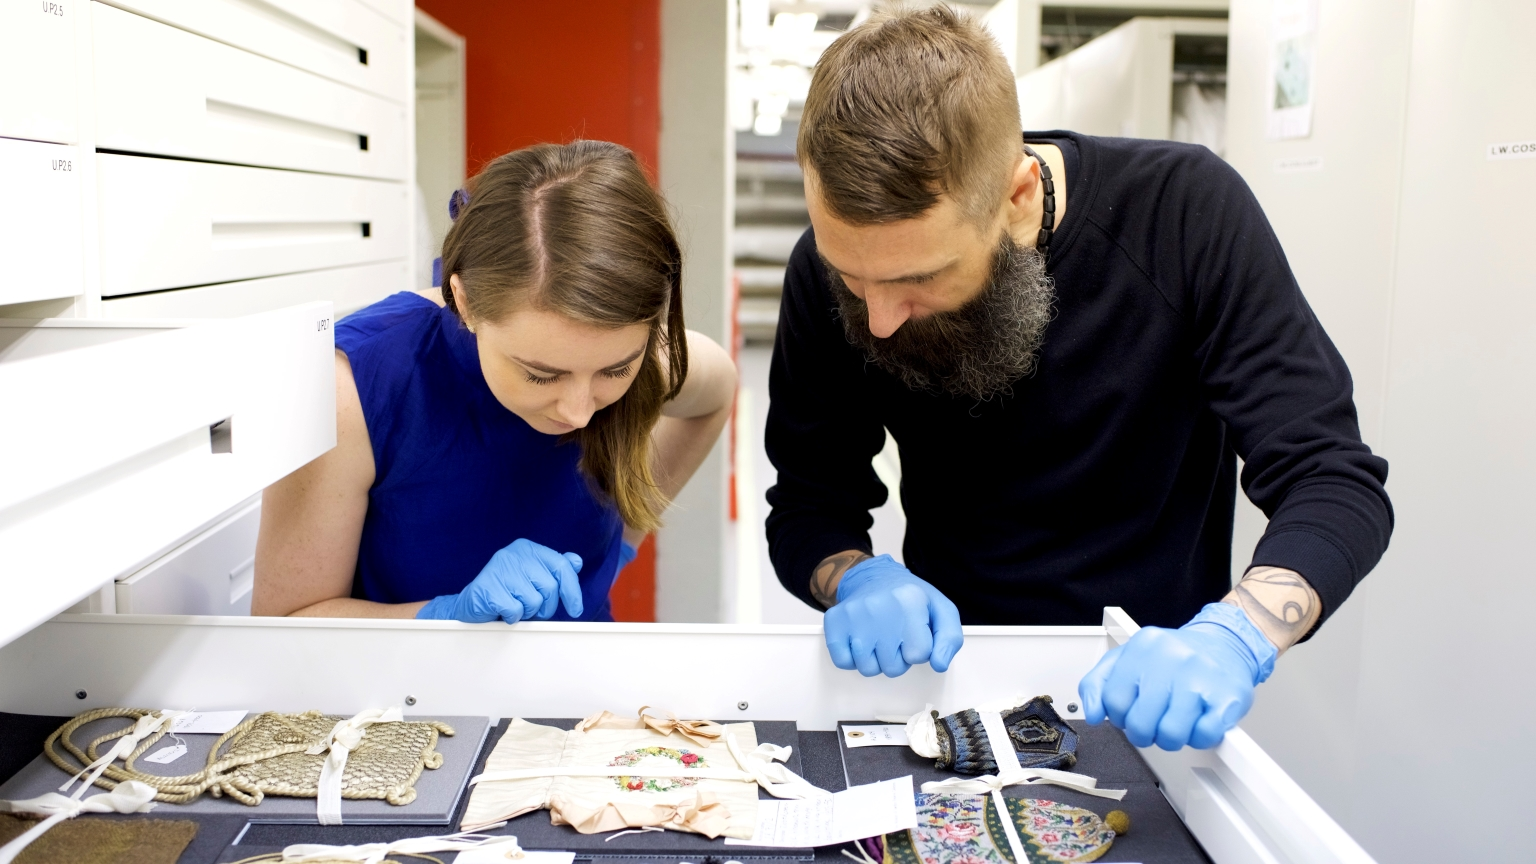 Timothy A. Long, Curator of Fashion & Decorative Arts and Dr Danielle Thom, Curator of Making, inside the Costume Store at the Museum of London